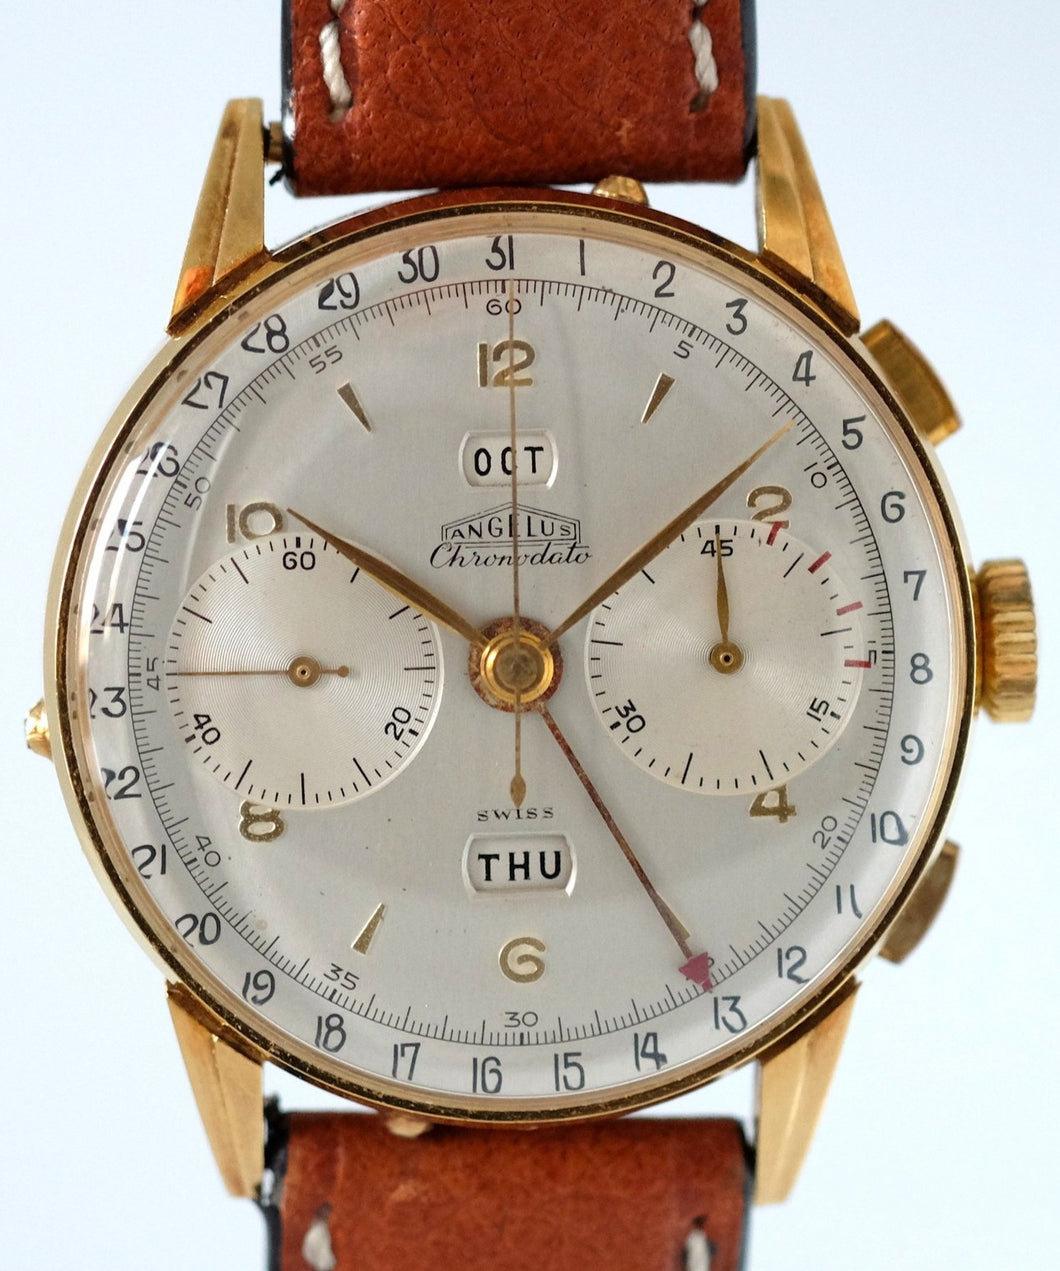 Angelus Chronodato Triple Date Chronograph in Gold